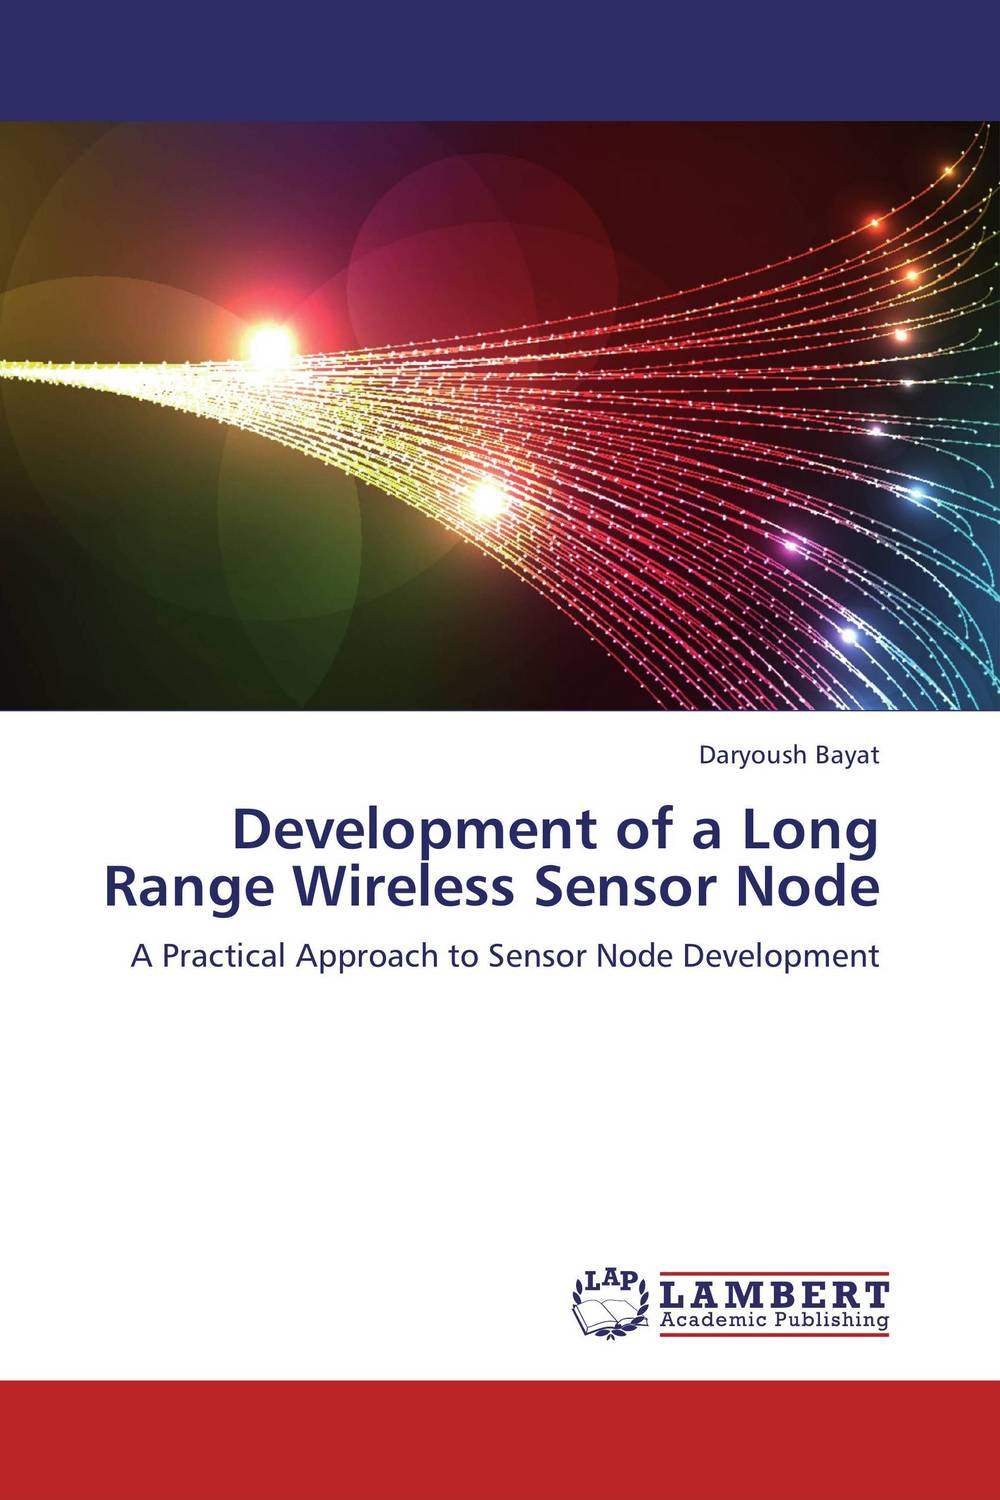 Development of a Long Range Wireless Sensor Node social networking mindset and education